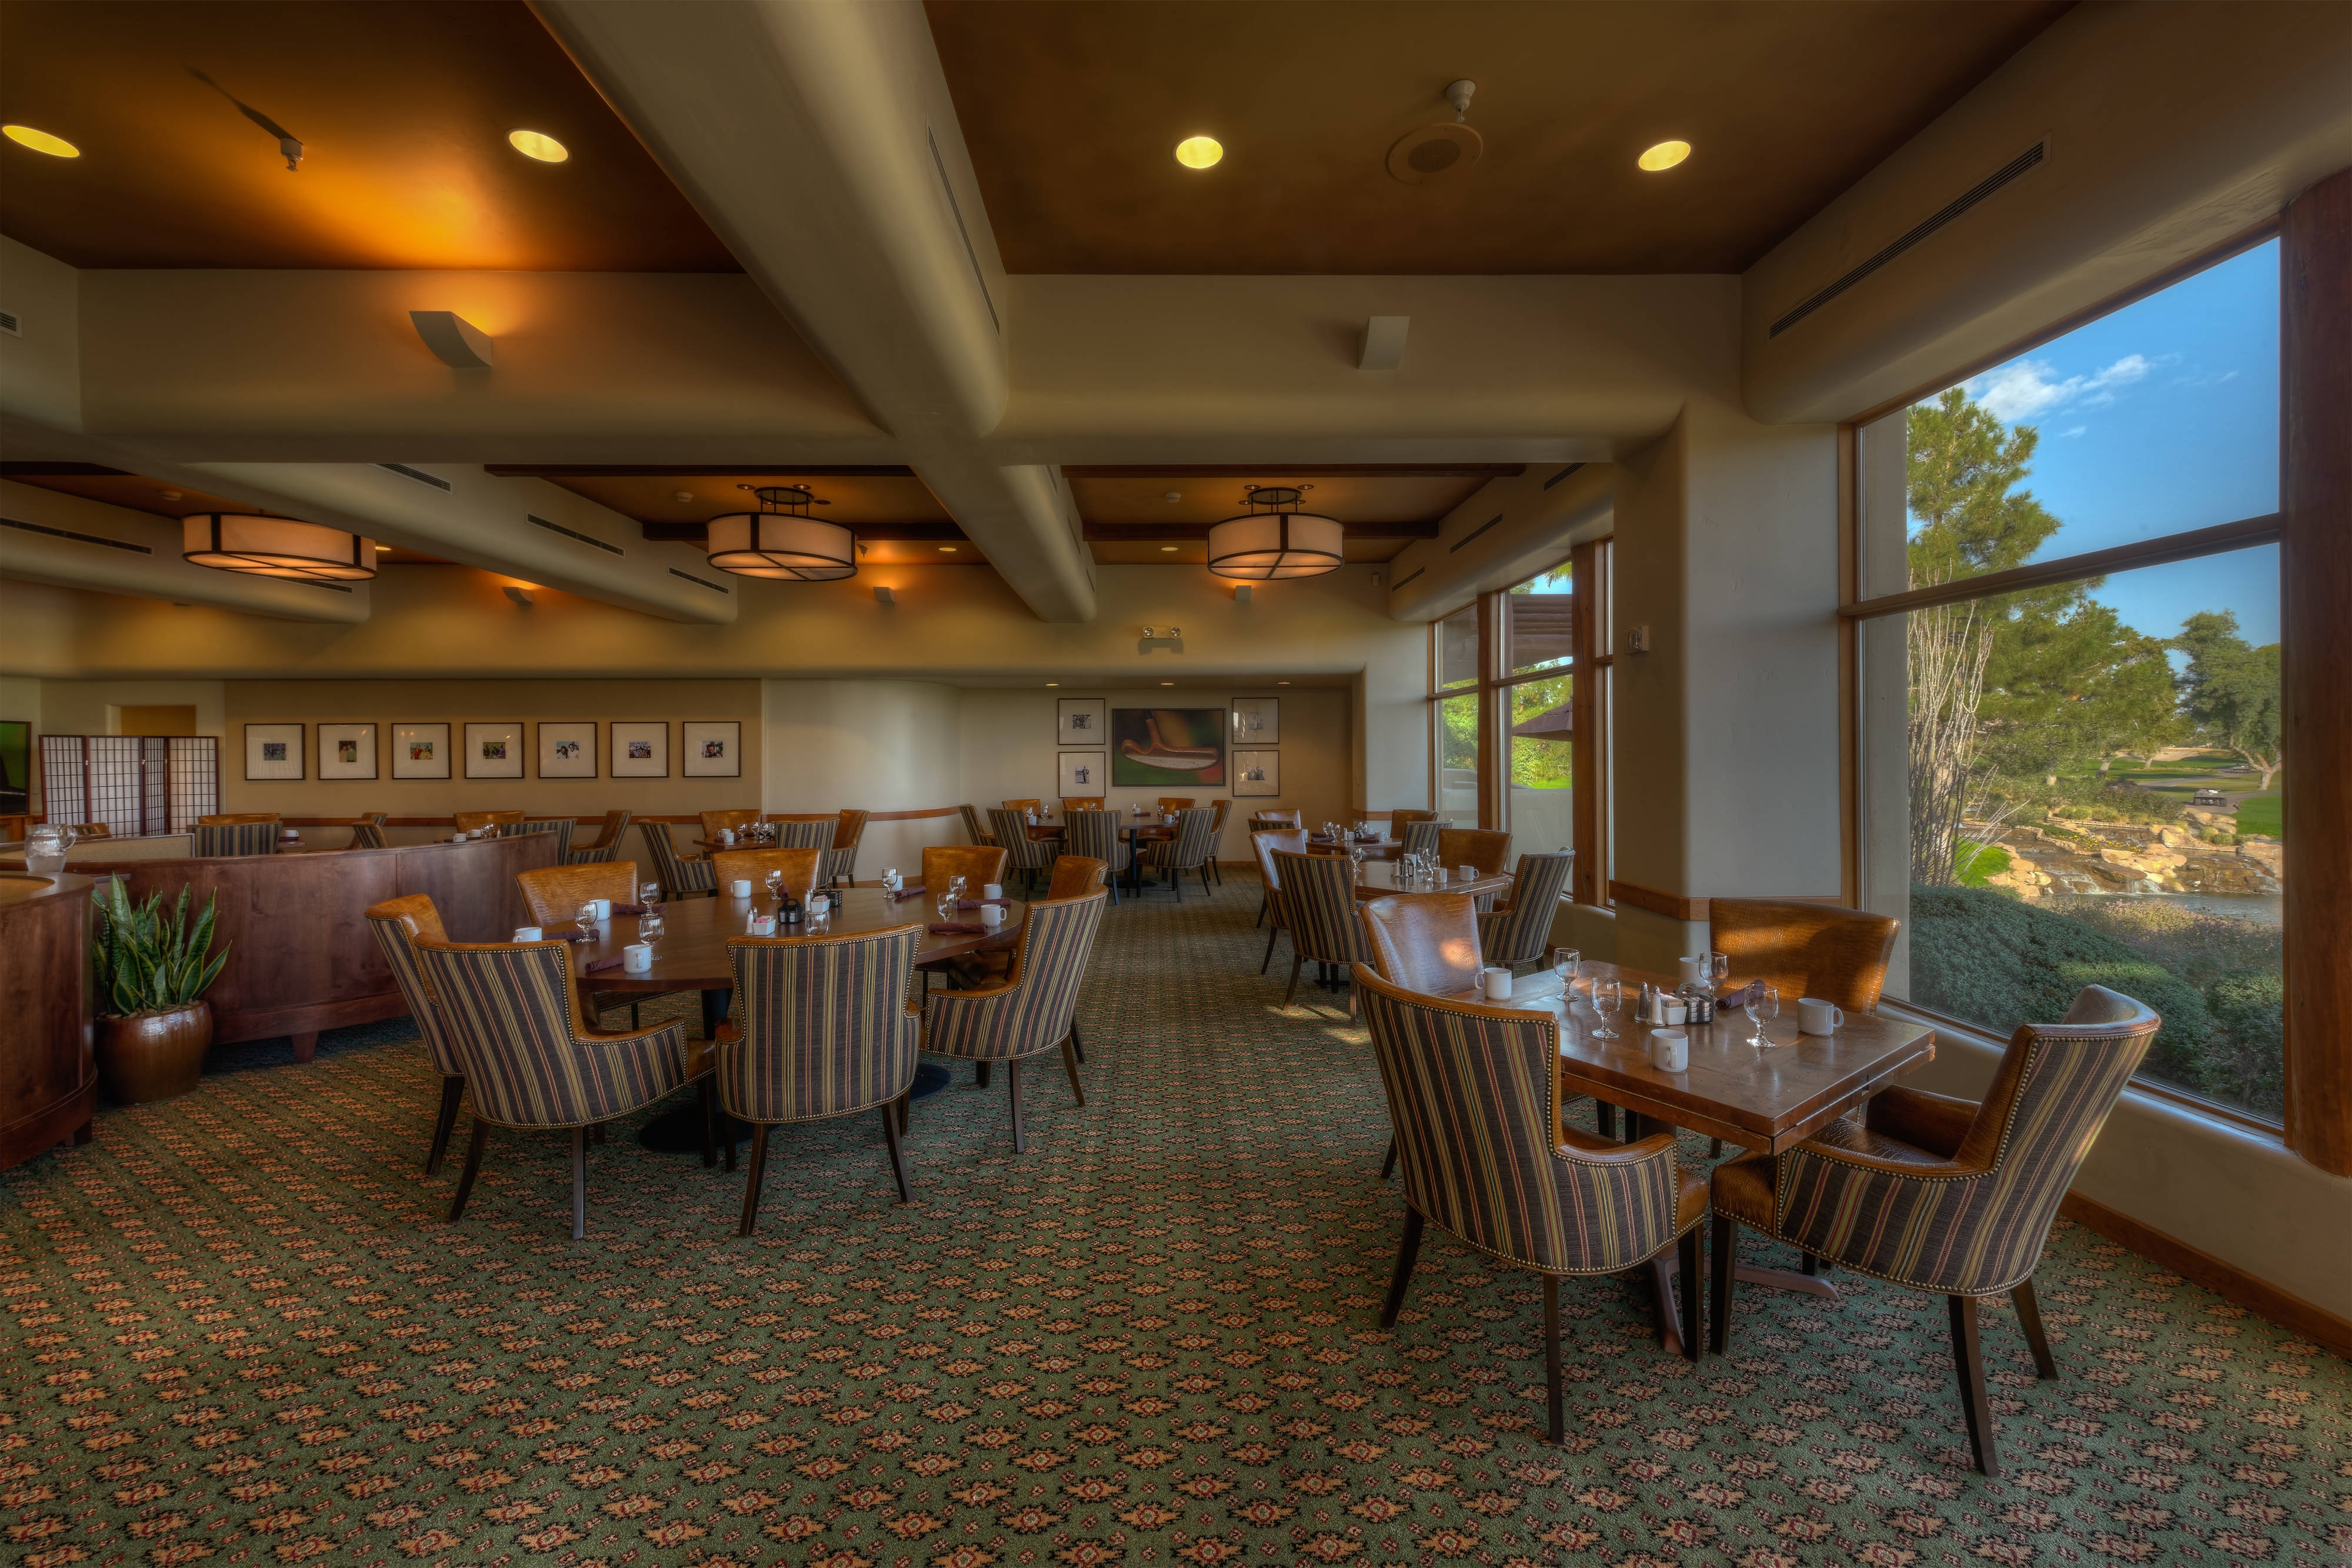 Acacia Restaurant at Camelback Golf Club